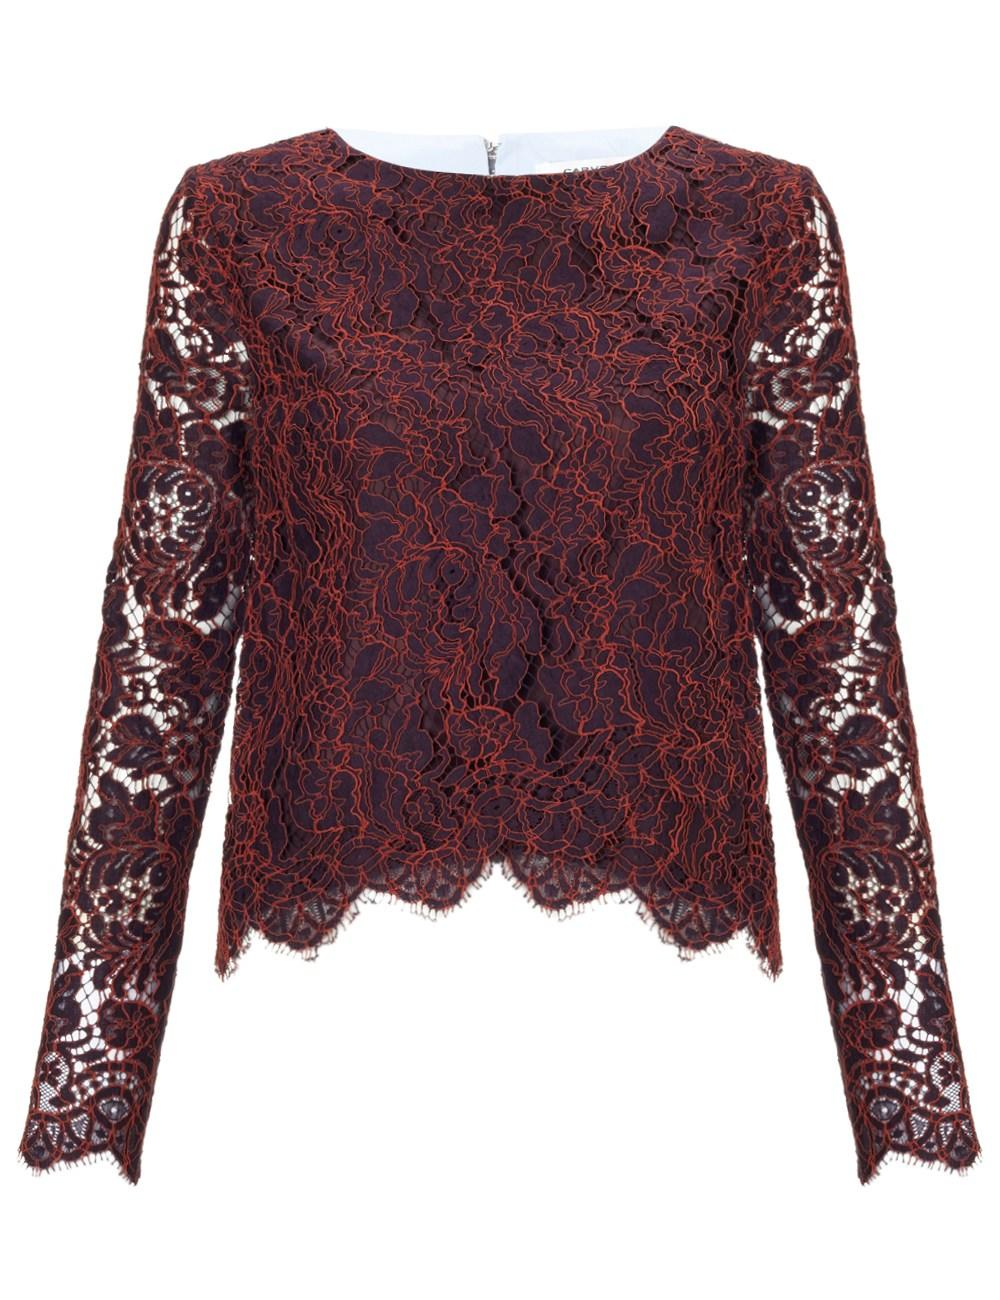 Burgundy Lace Poplin Top Carven From Avenue 32 Epic